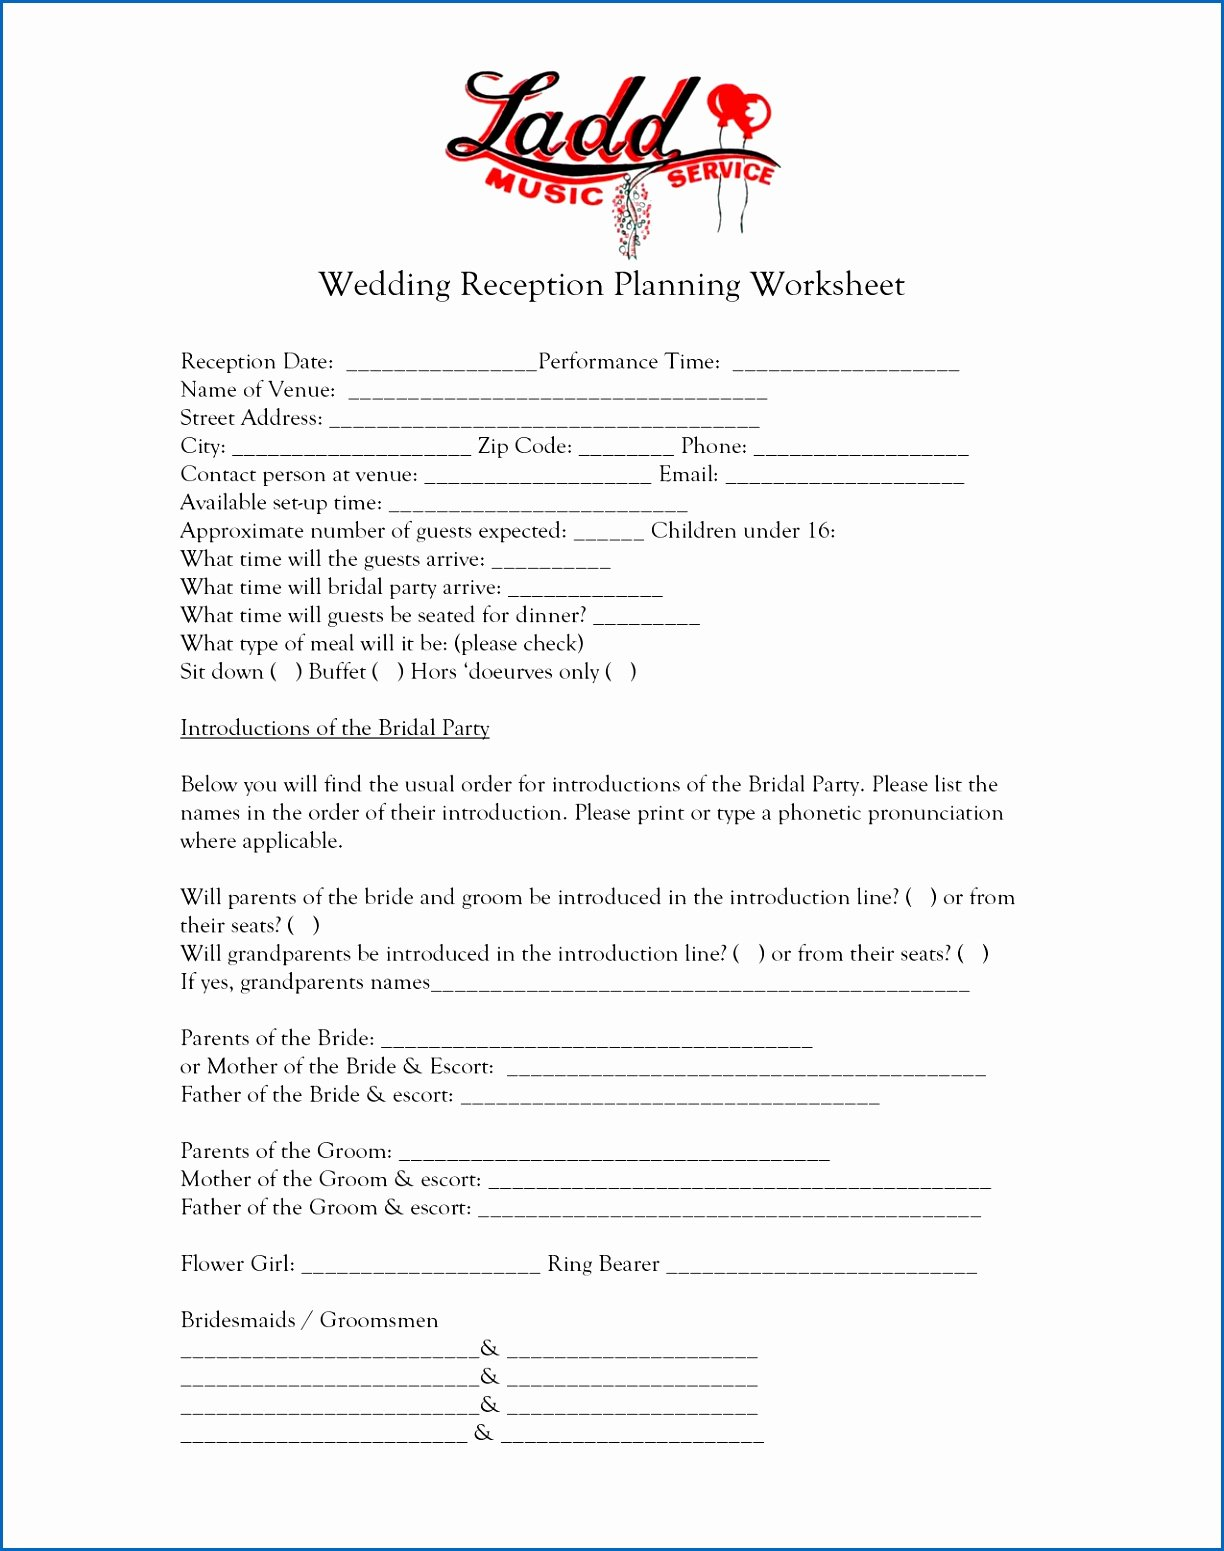 7 Dj Contracts for Weddings